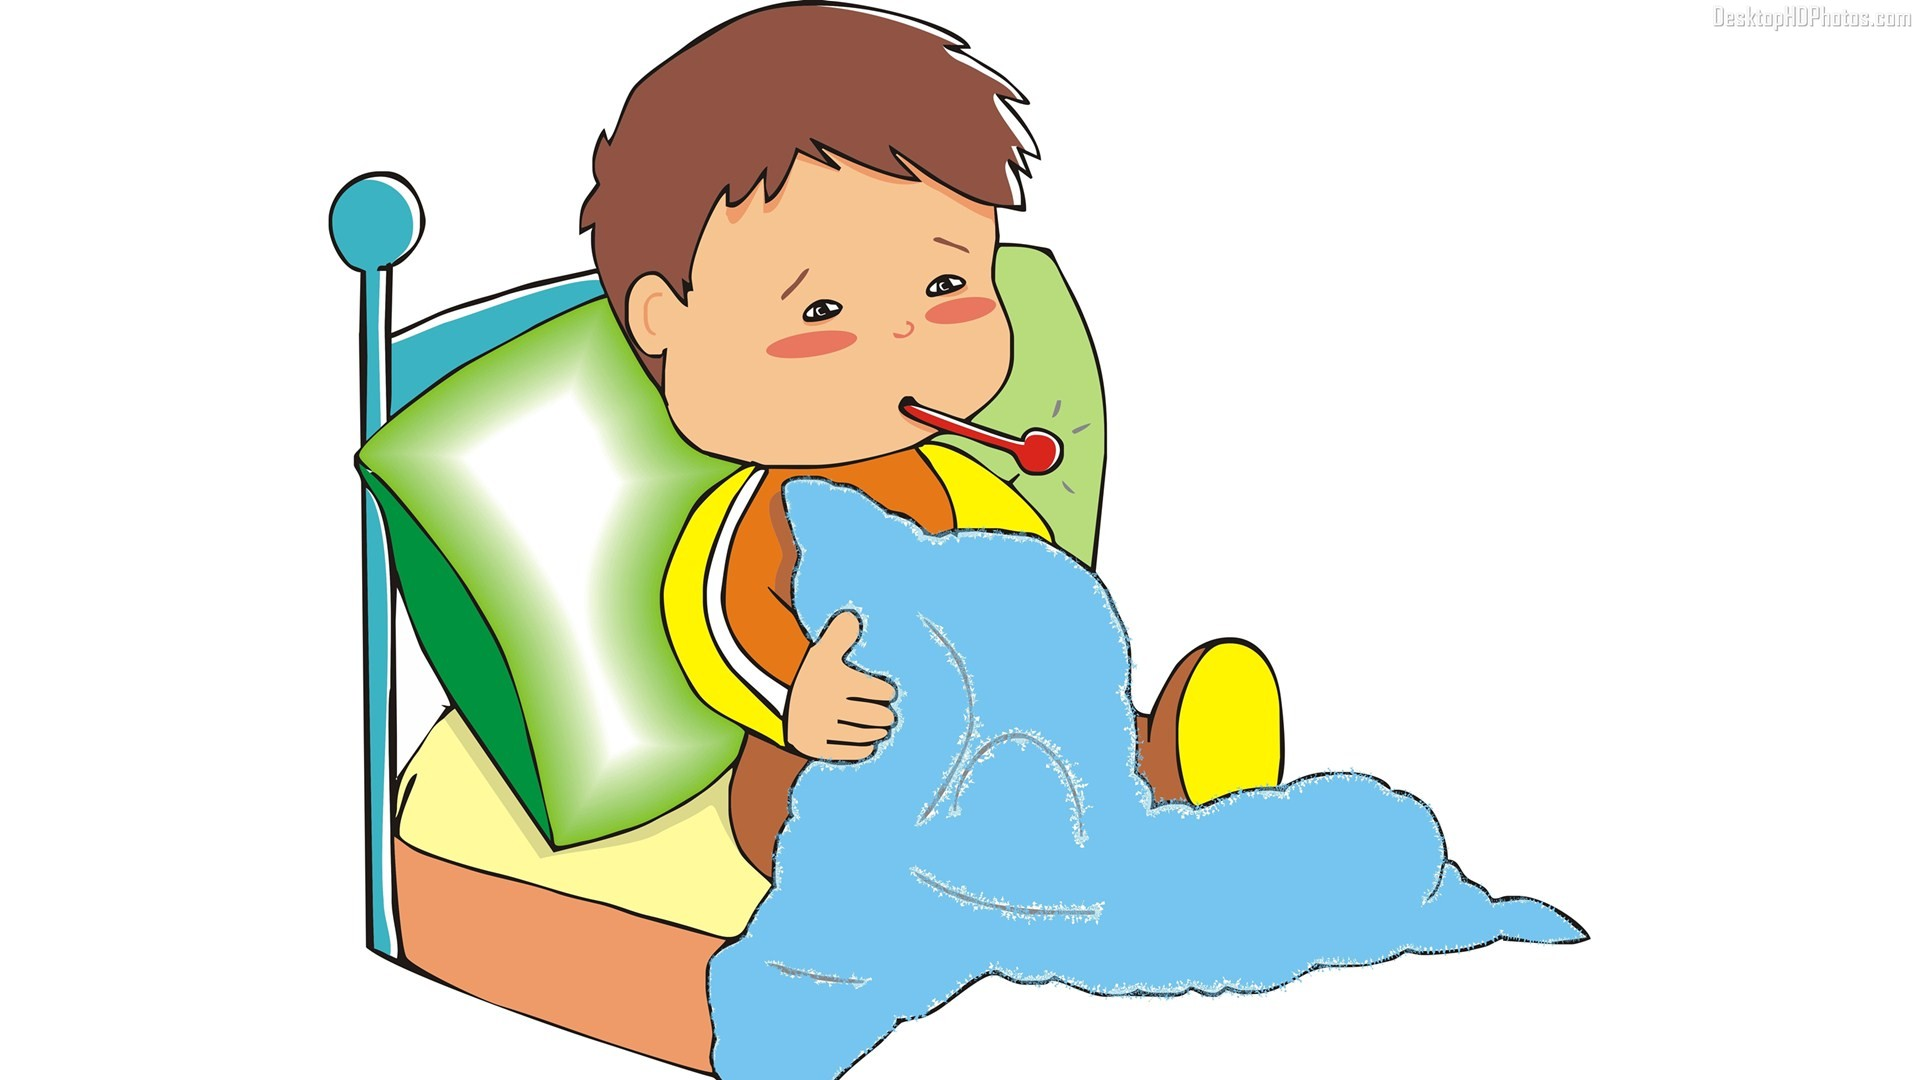 Kid In Bed Png Hd Transparent Kid In Bed Hd Png Images Pluspng